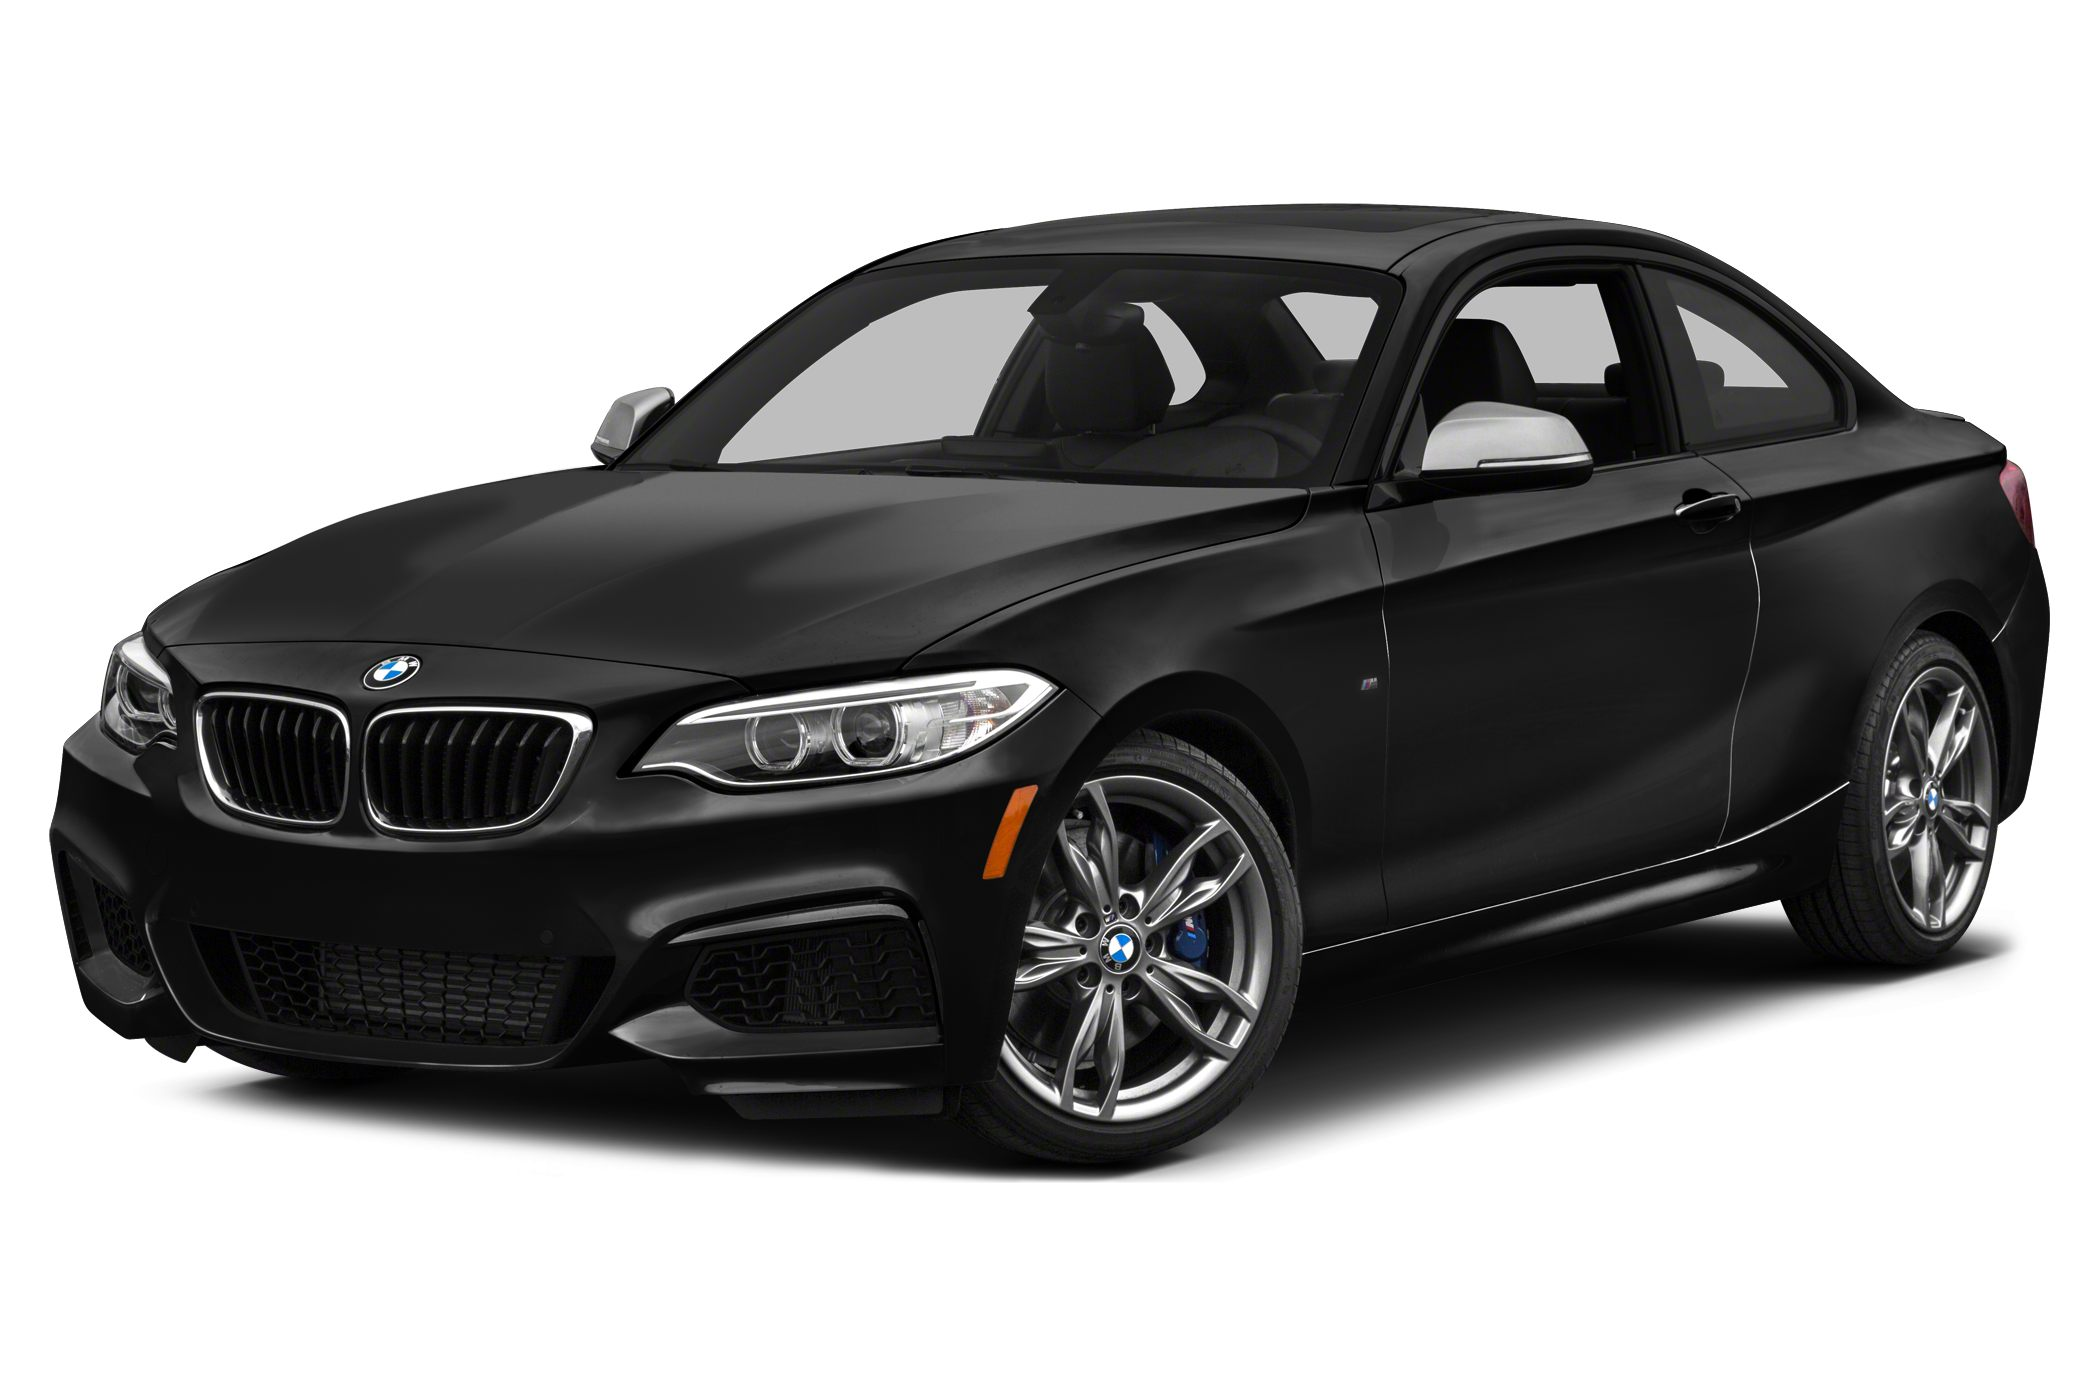 2015 BMW M235 I Convertible for sale in Chico for $57,575 with 0 miles.